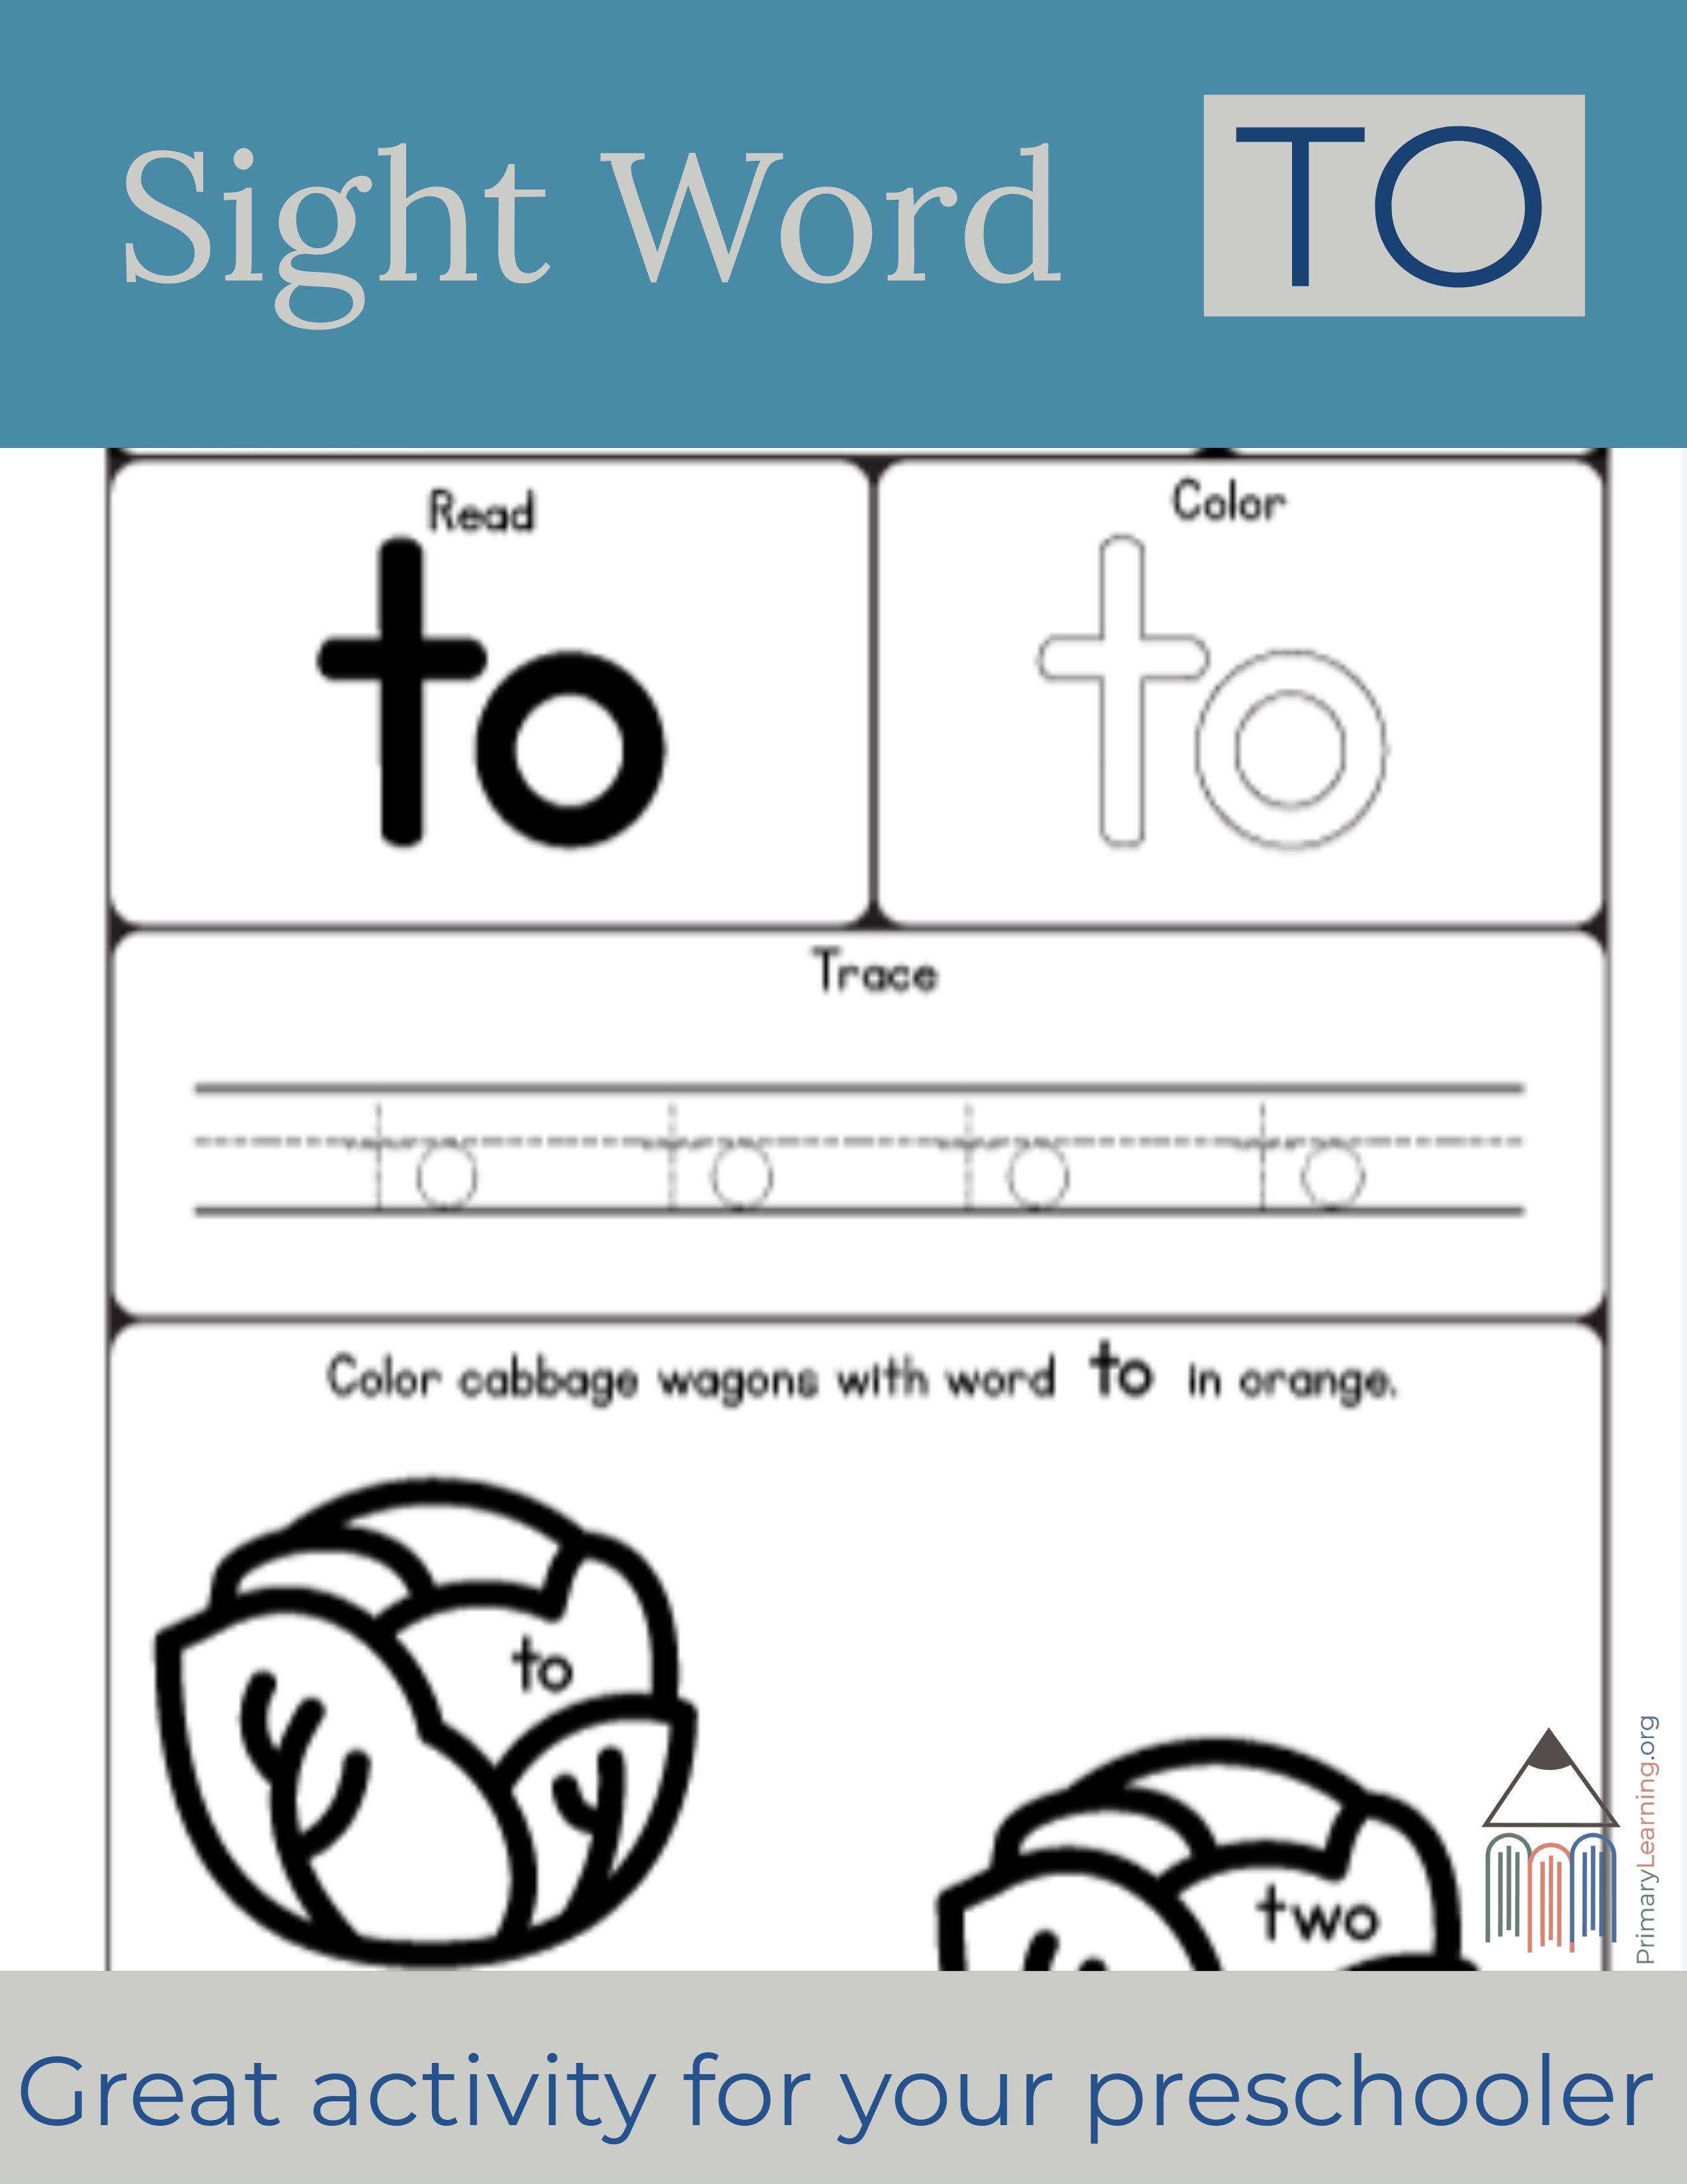 Sight Word To Worksheet